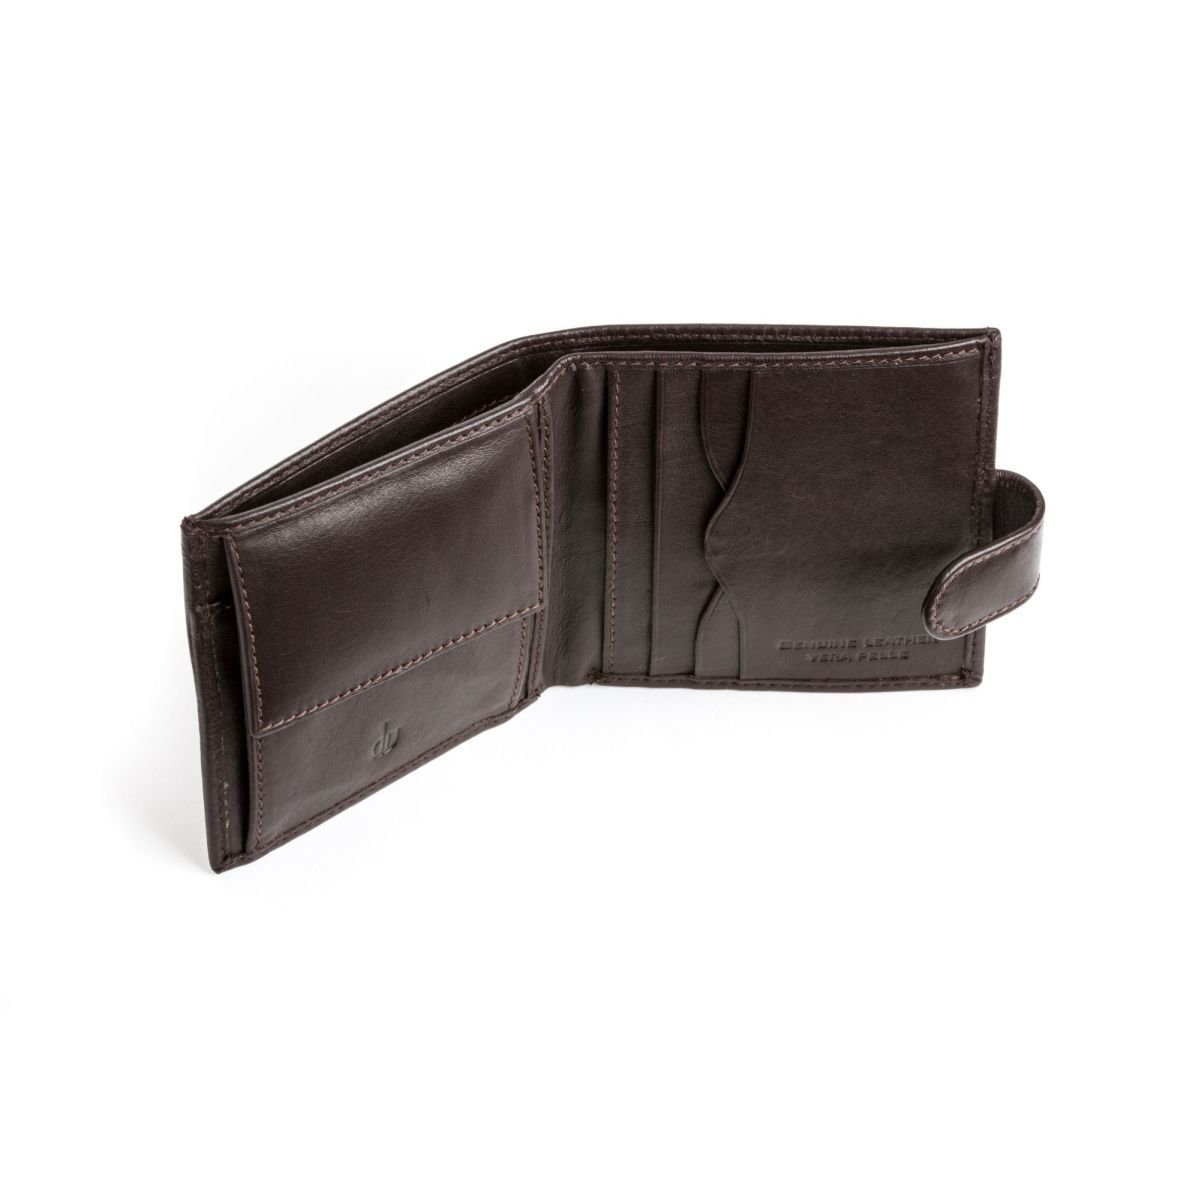 Men's Leather Wallet With Snap Closure - Dark Brown